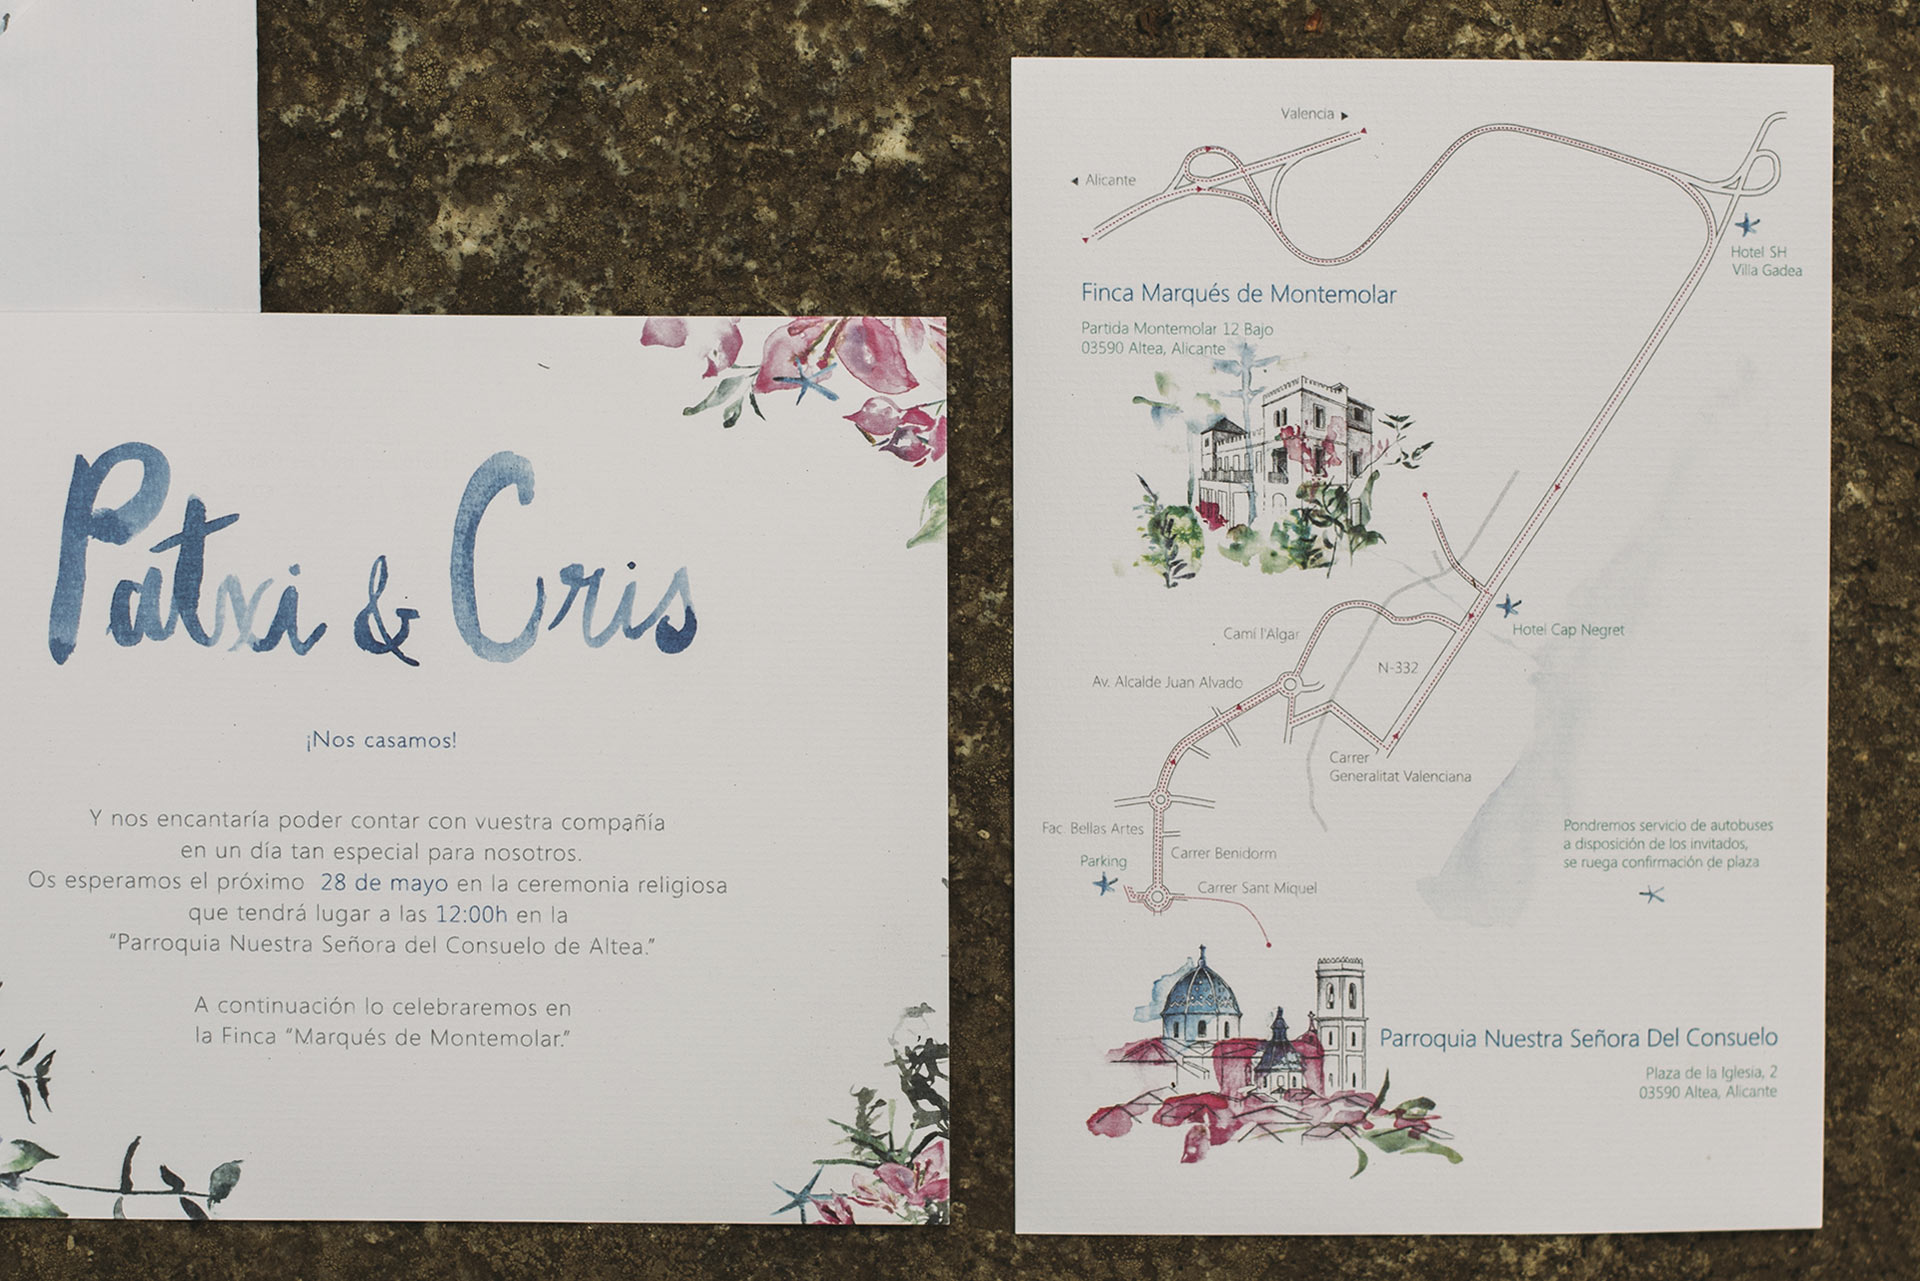 Wedding invitation with pines and bougainvillea